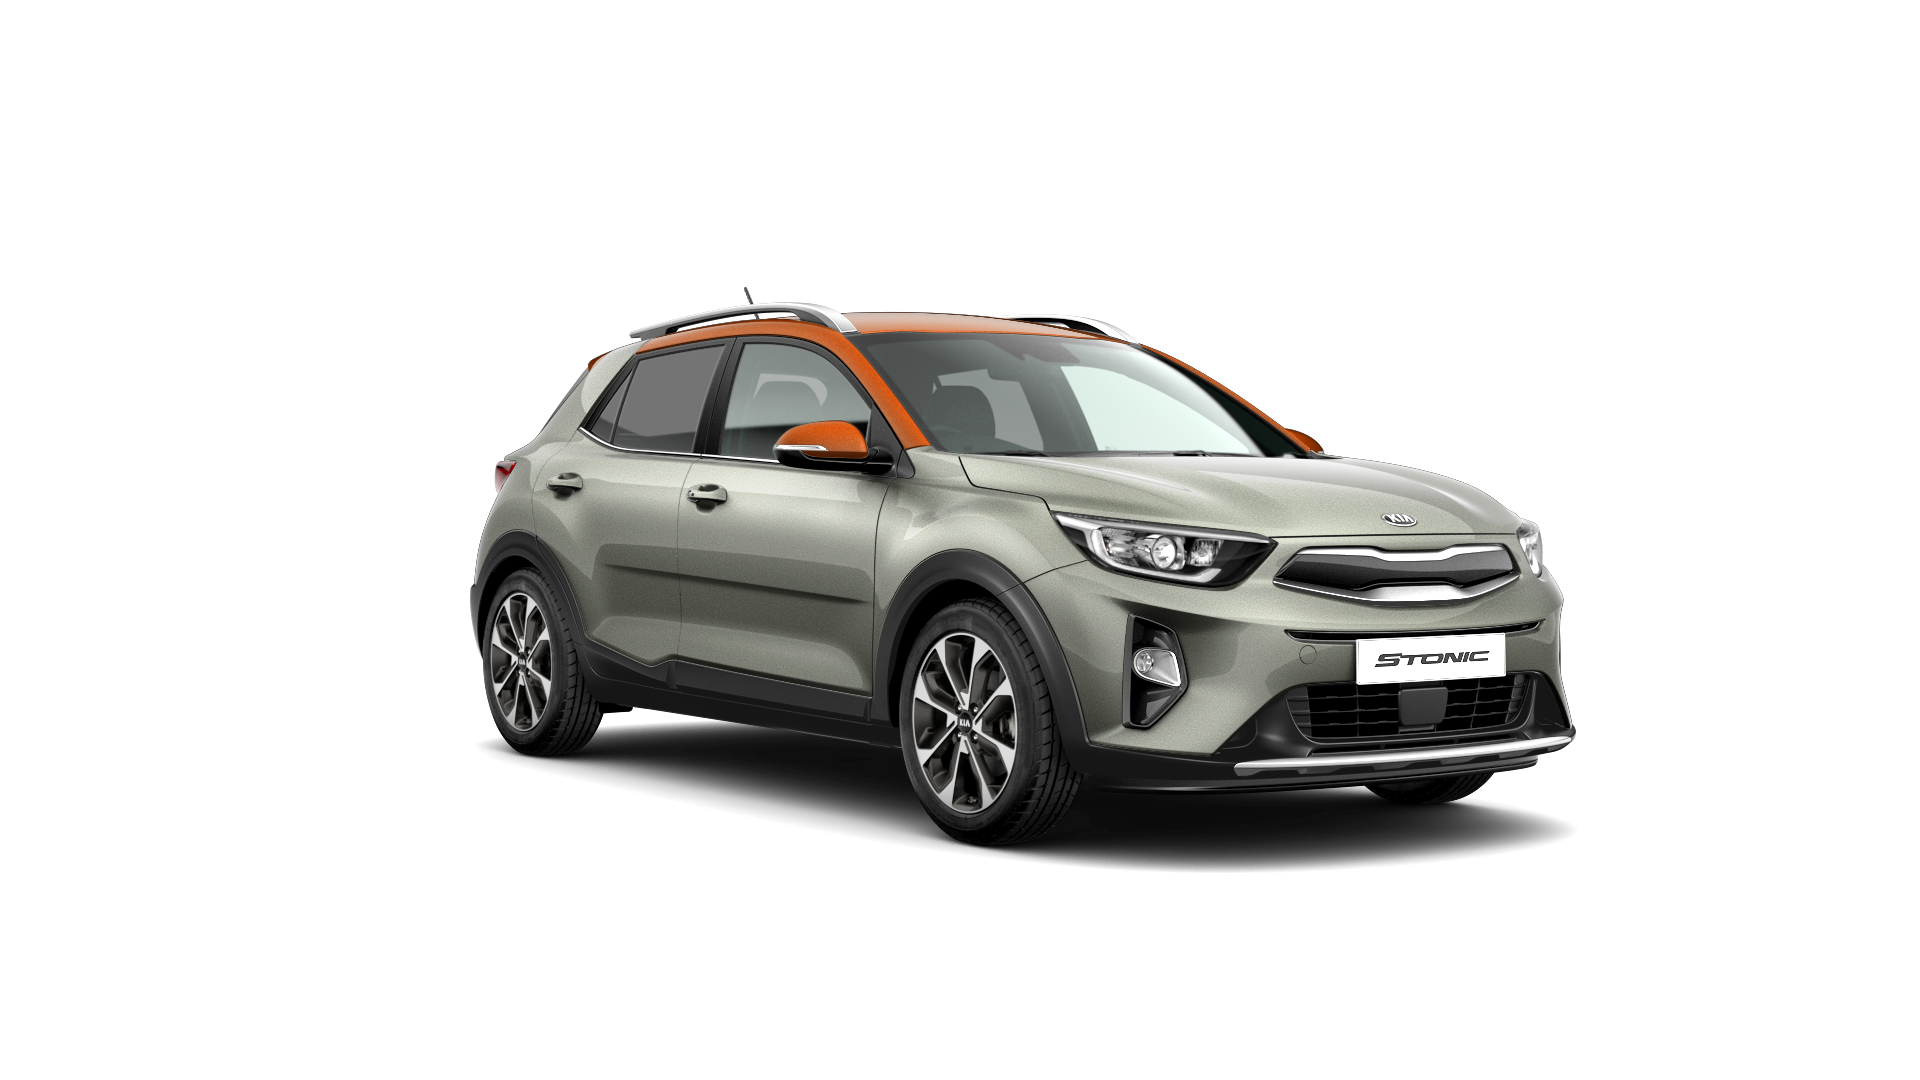 Kia Stonic First Edition - Urban Grey / Orange